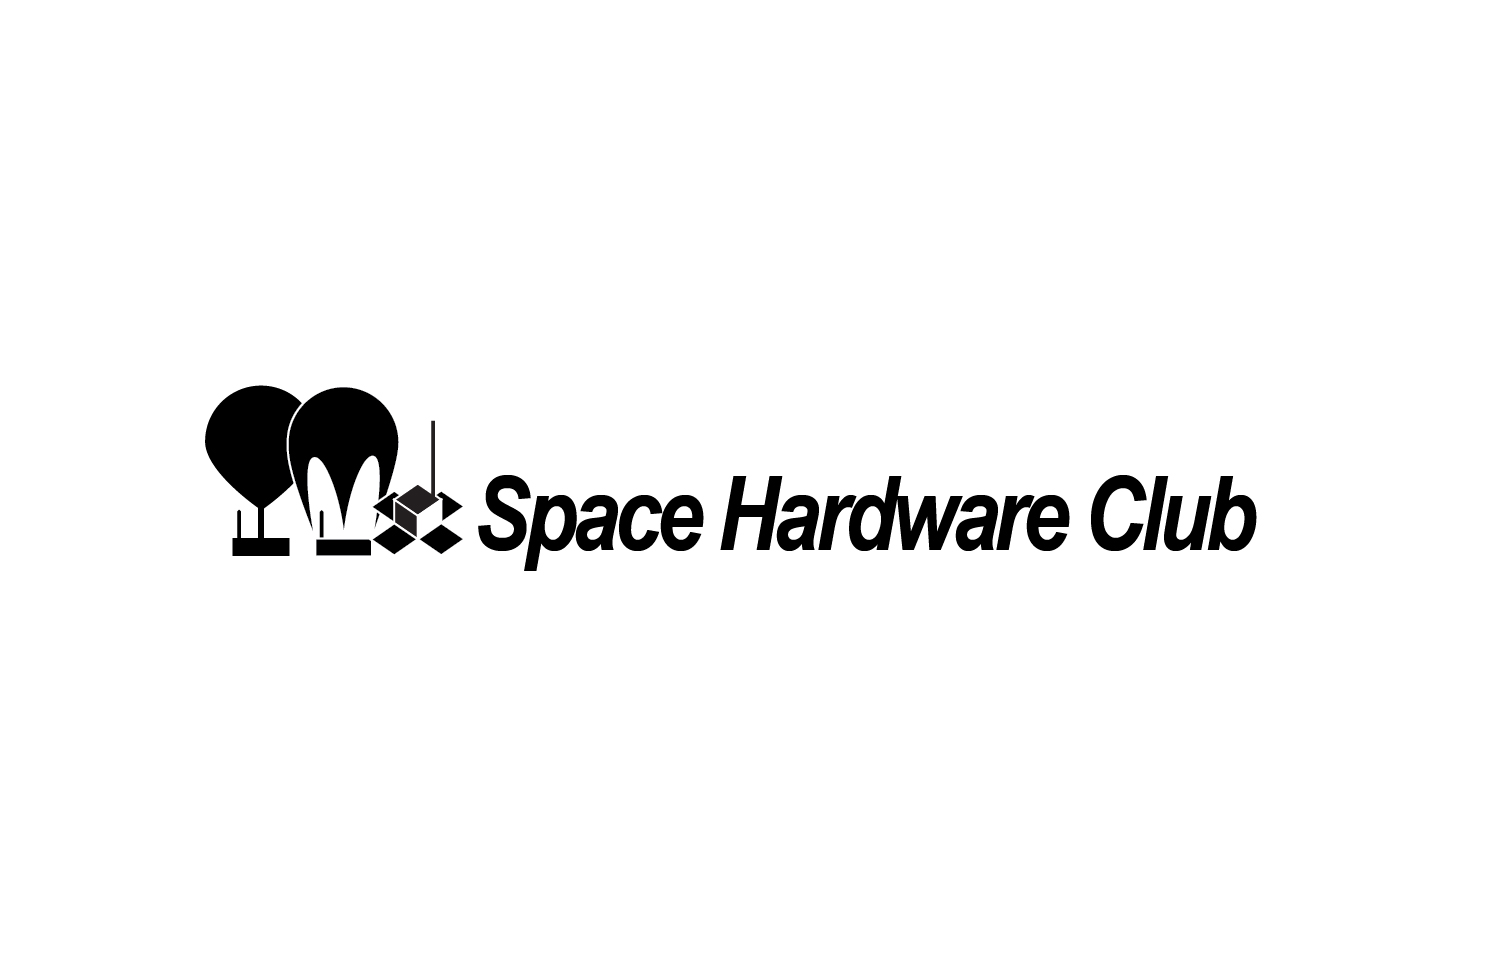 Space Hardware Club Logo